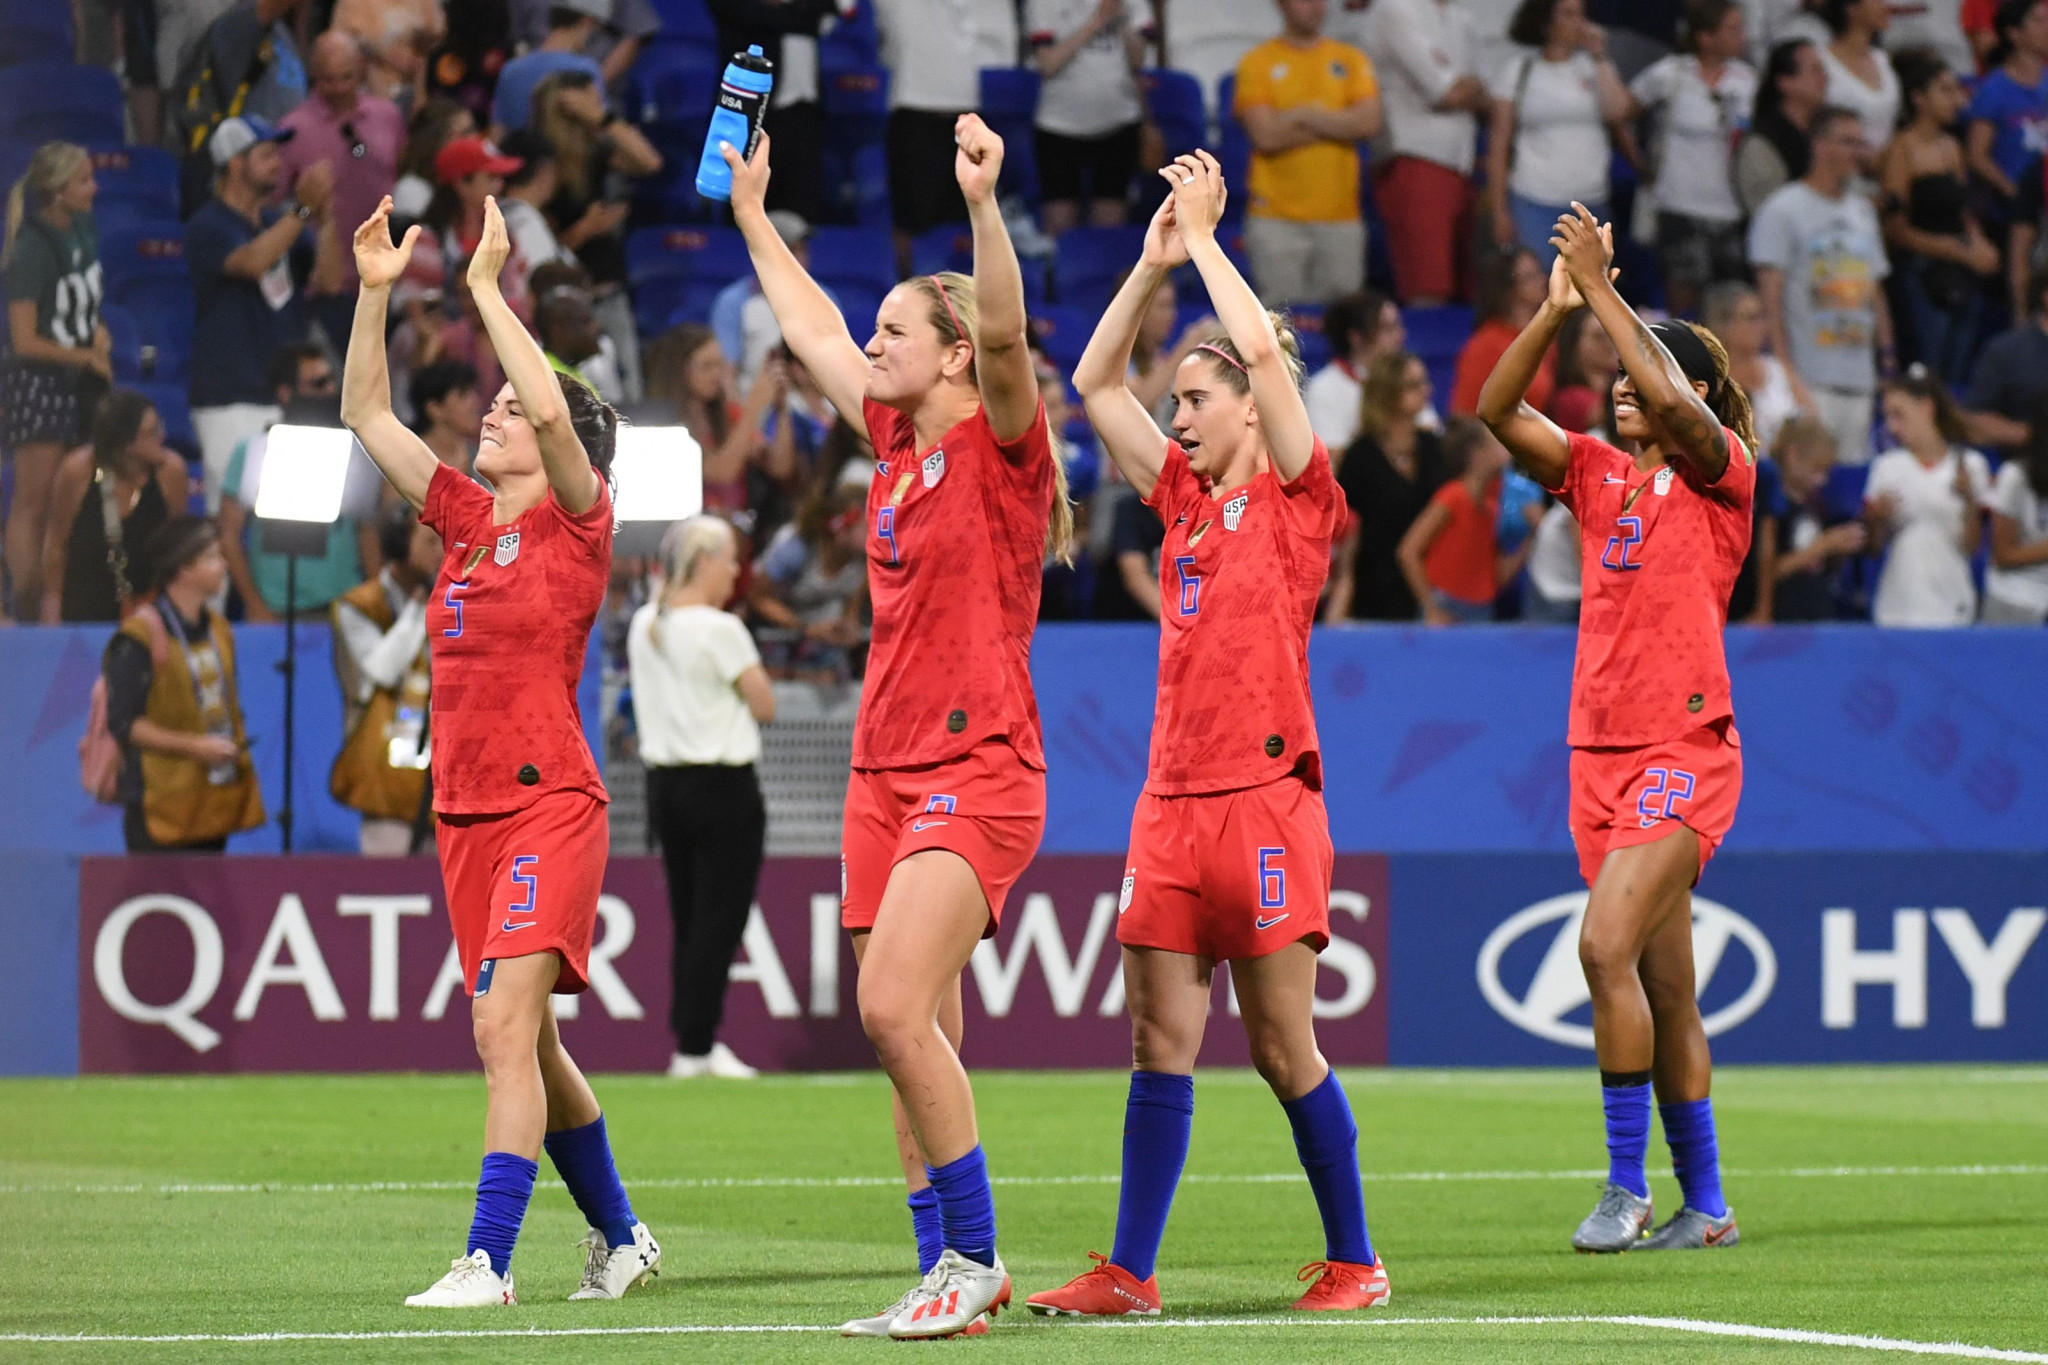 Morgan sends United States through to Women's World Cup final